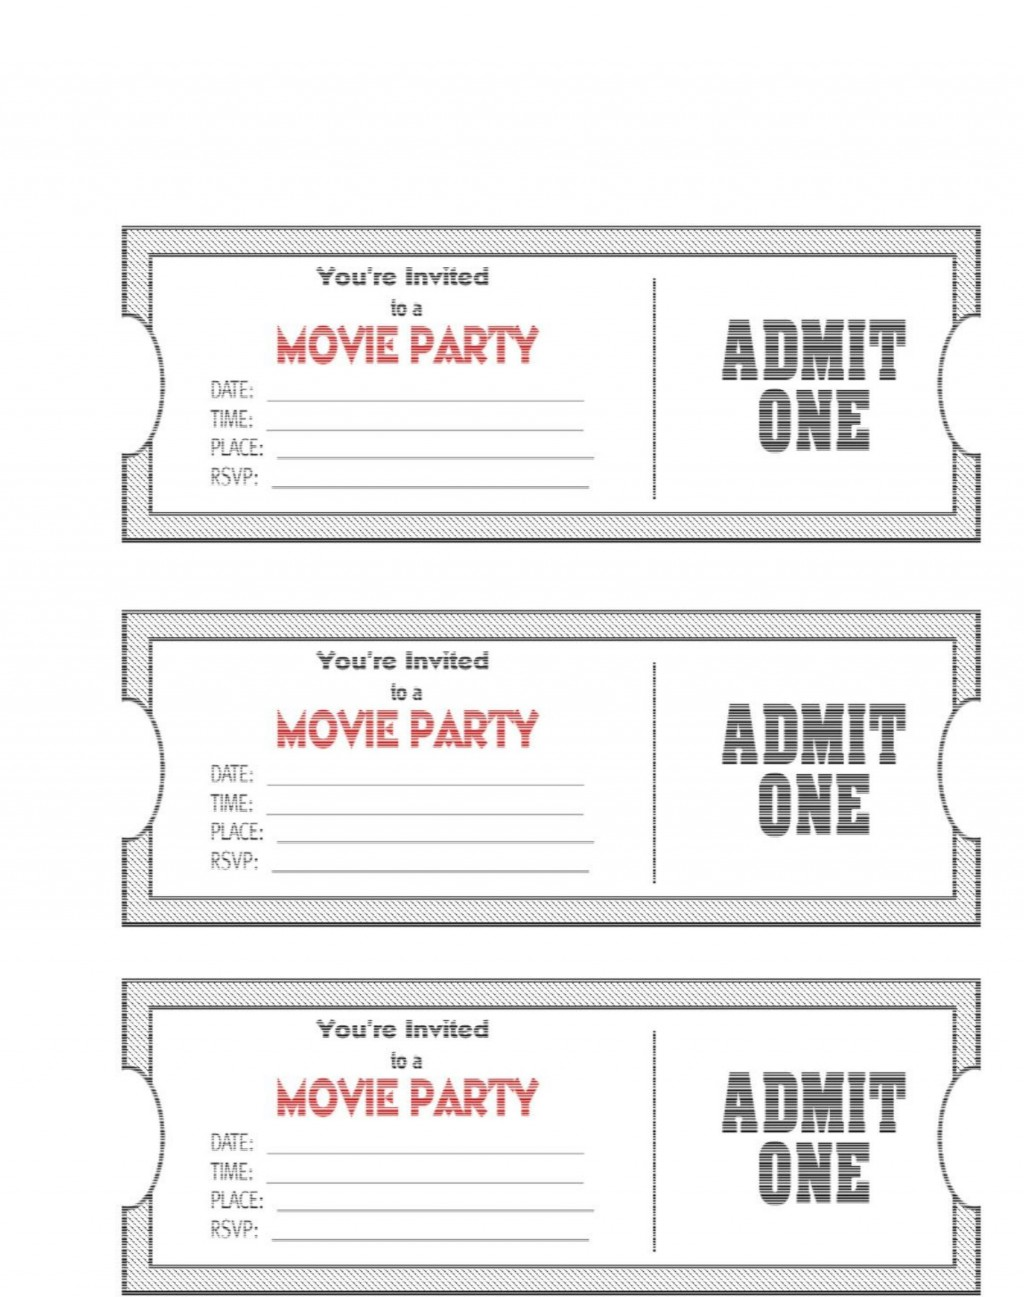 002 Stupendou Free Concert Ticket Maker Template Concept  Printable GiftLarge